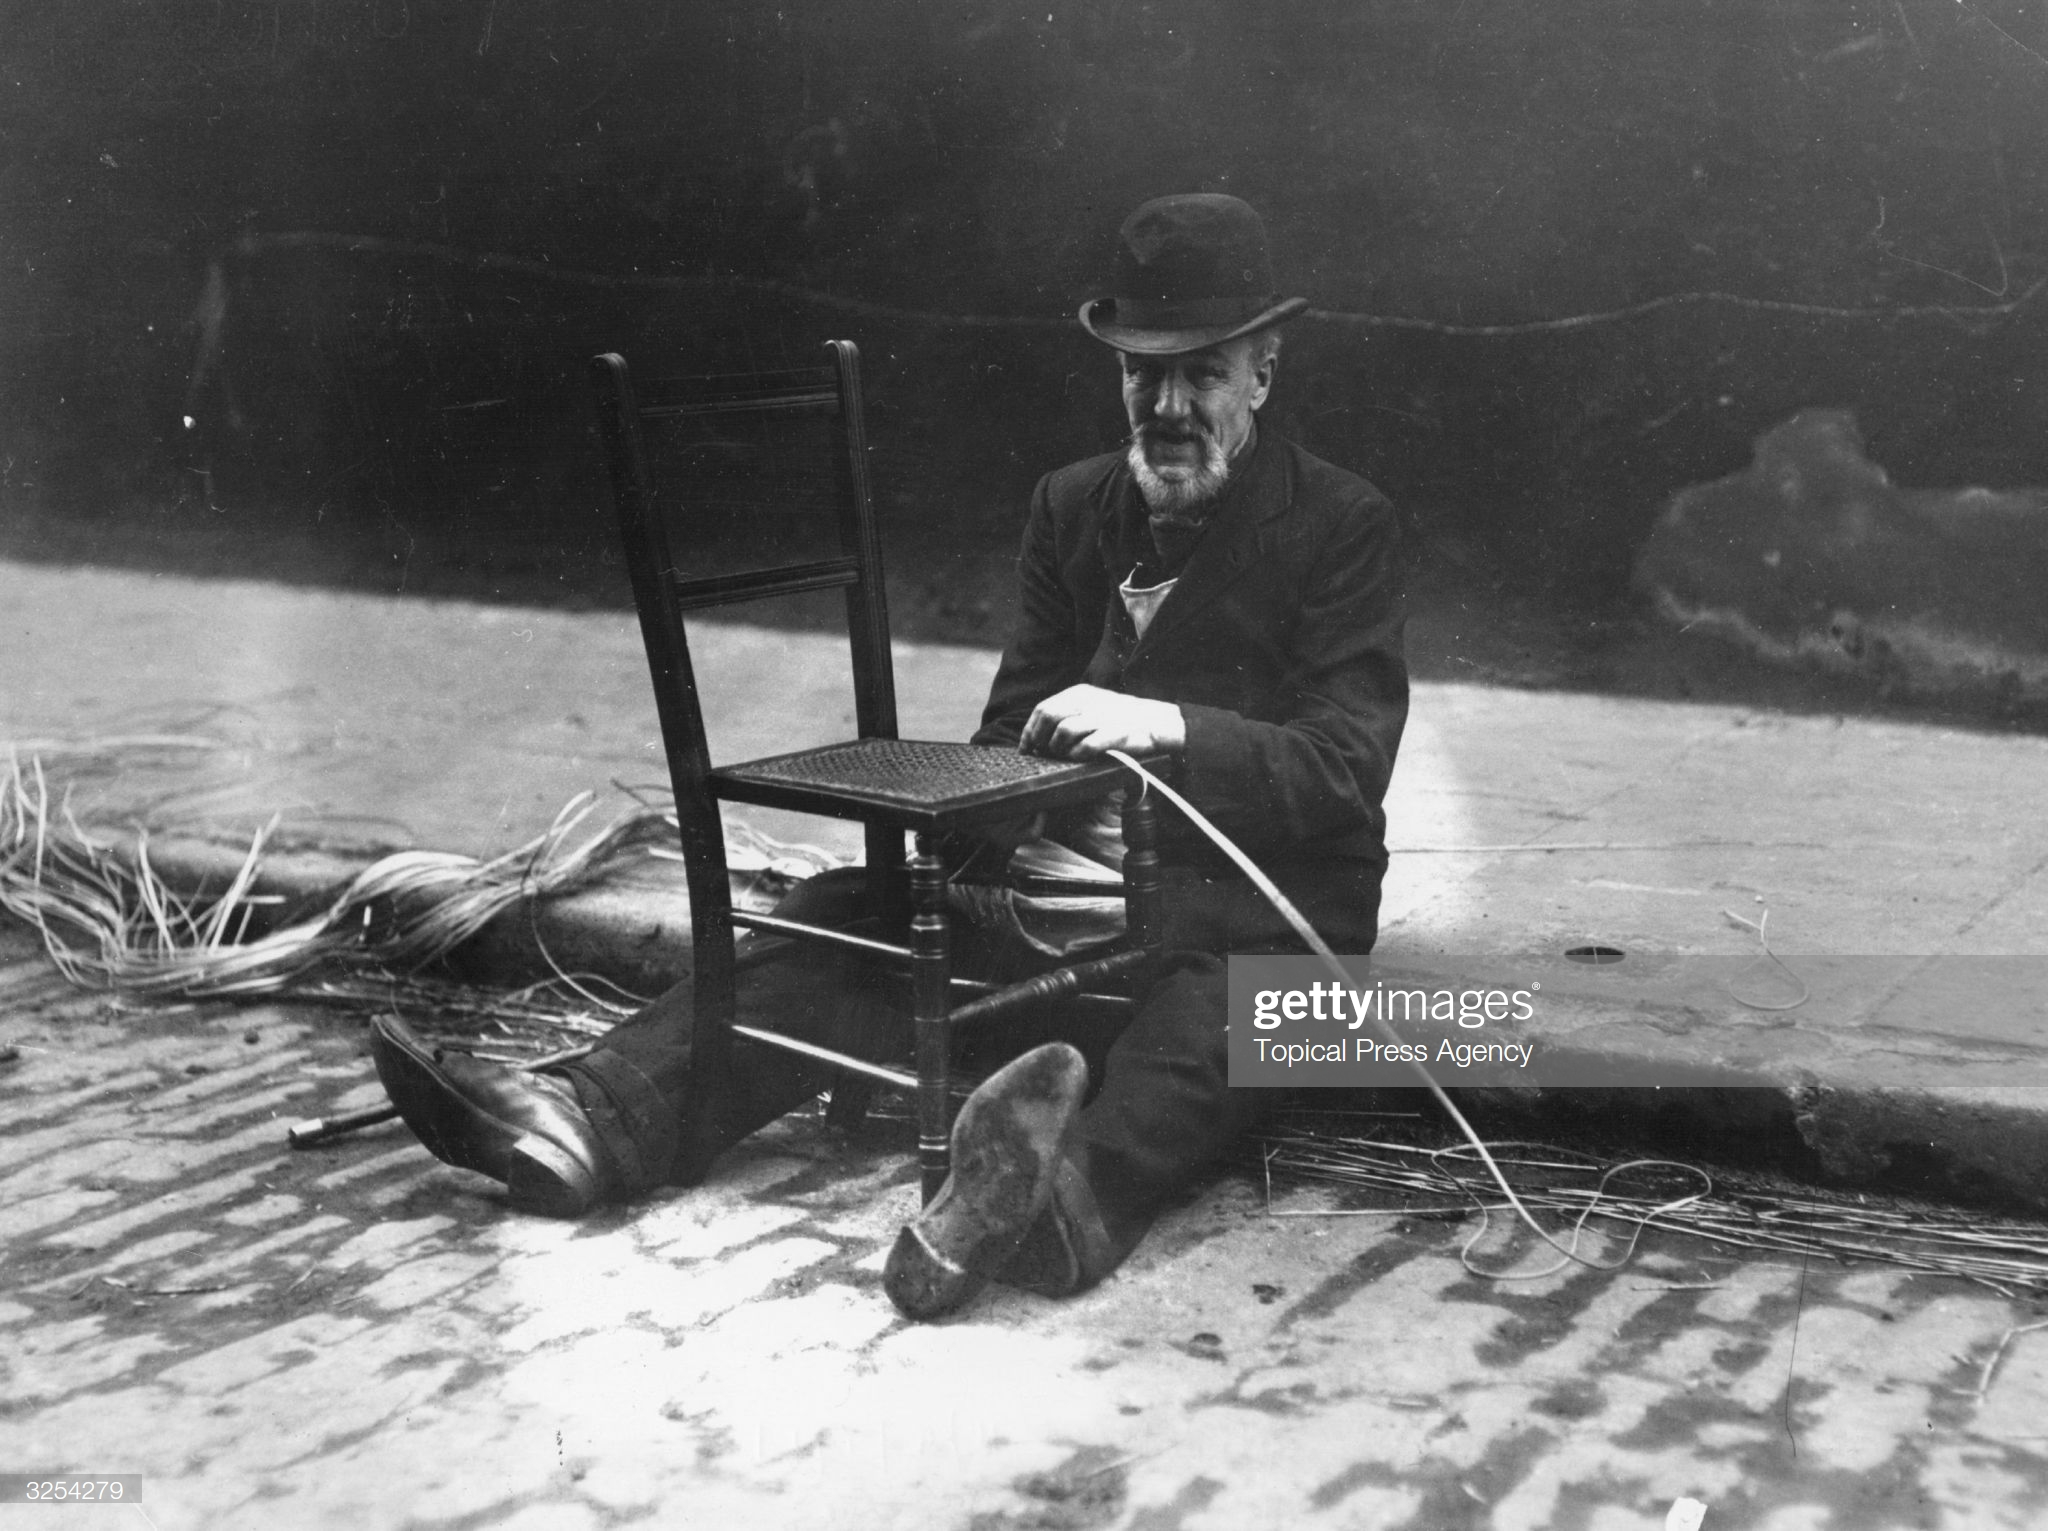 Tabard Street. A chairmender at work re-weaving the seat of a chair in Tabard Street c1911.  X.png